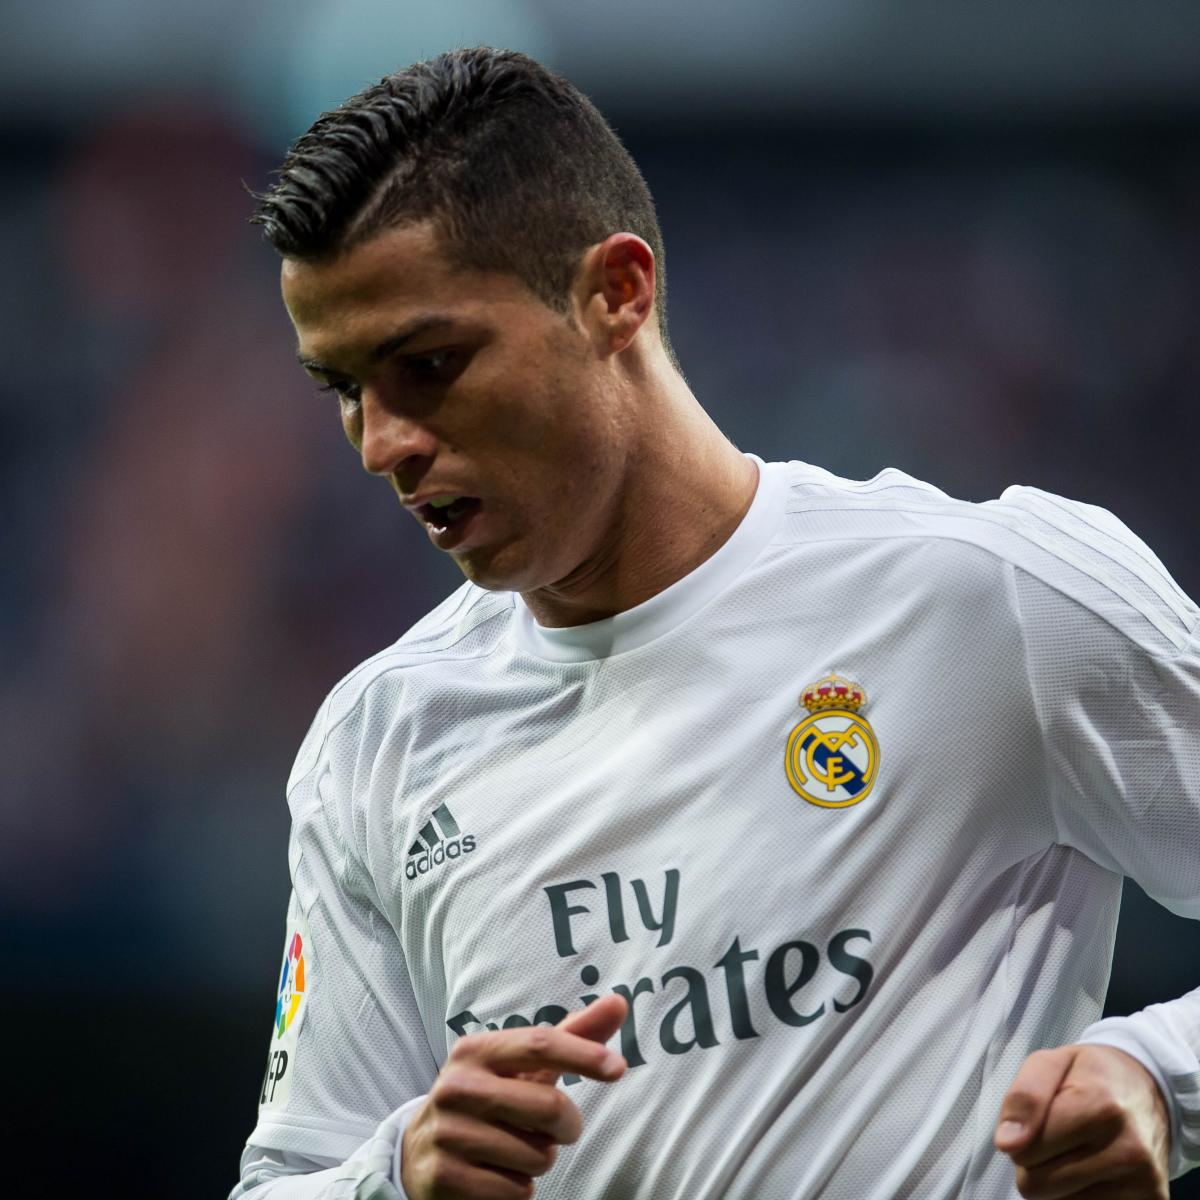 Keylor navas pays tribute to cristiano ronaldo sports mole - Real Madrid Transfer News Cristiano Ronaldo Named In 10 Man Axe Rumours Bleacher Report